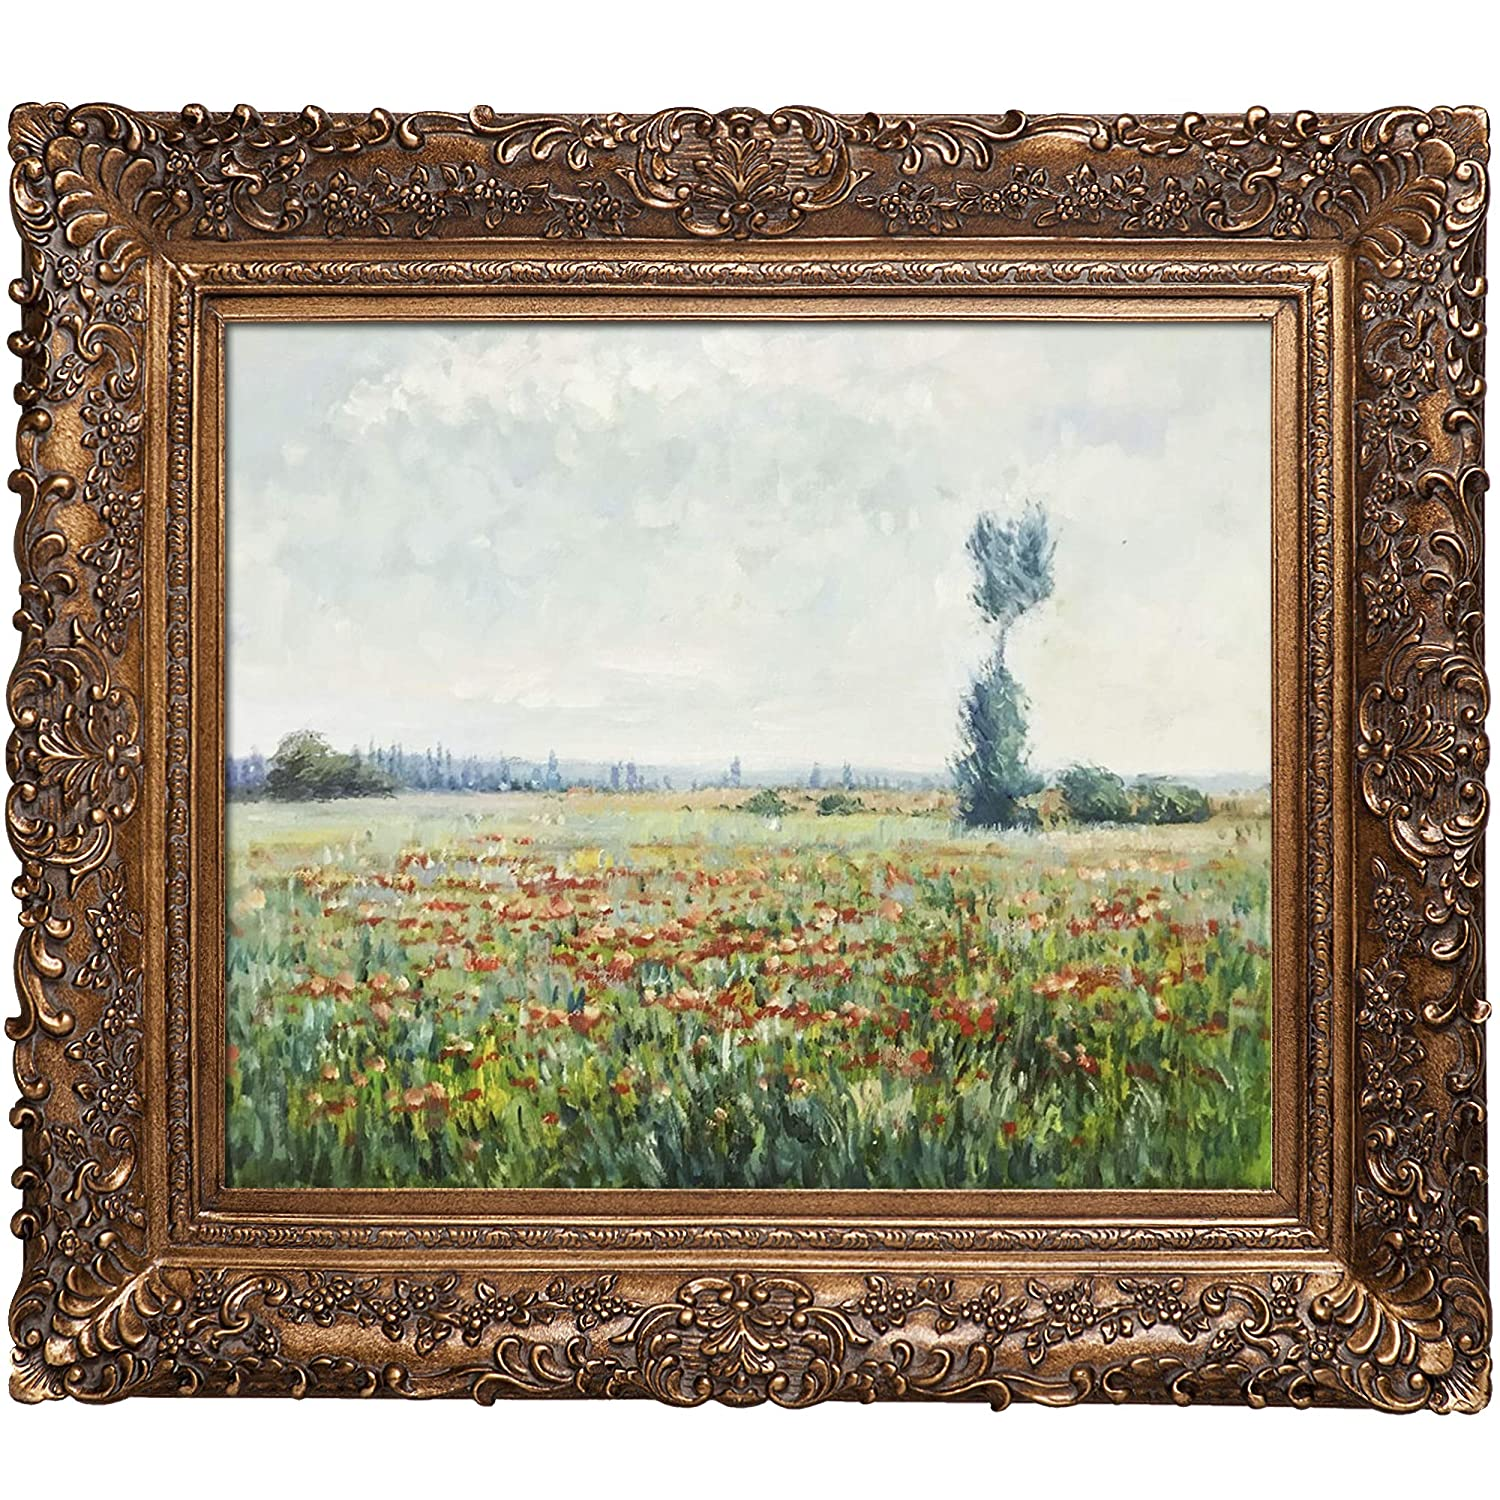 overstockArt Monet The Fields of Poppies Artwork with Athenian Gold Frame Finish